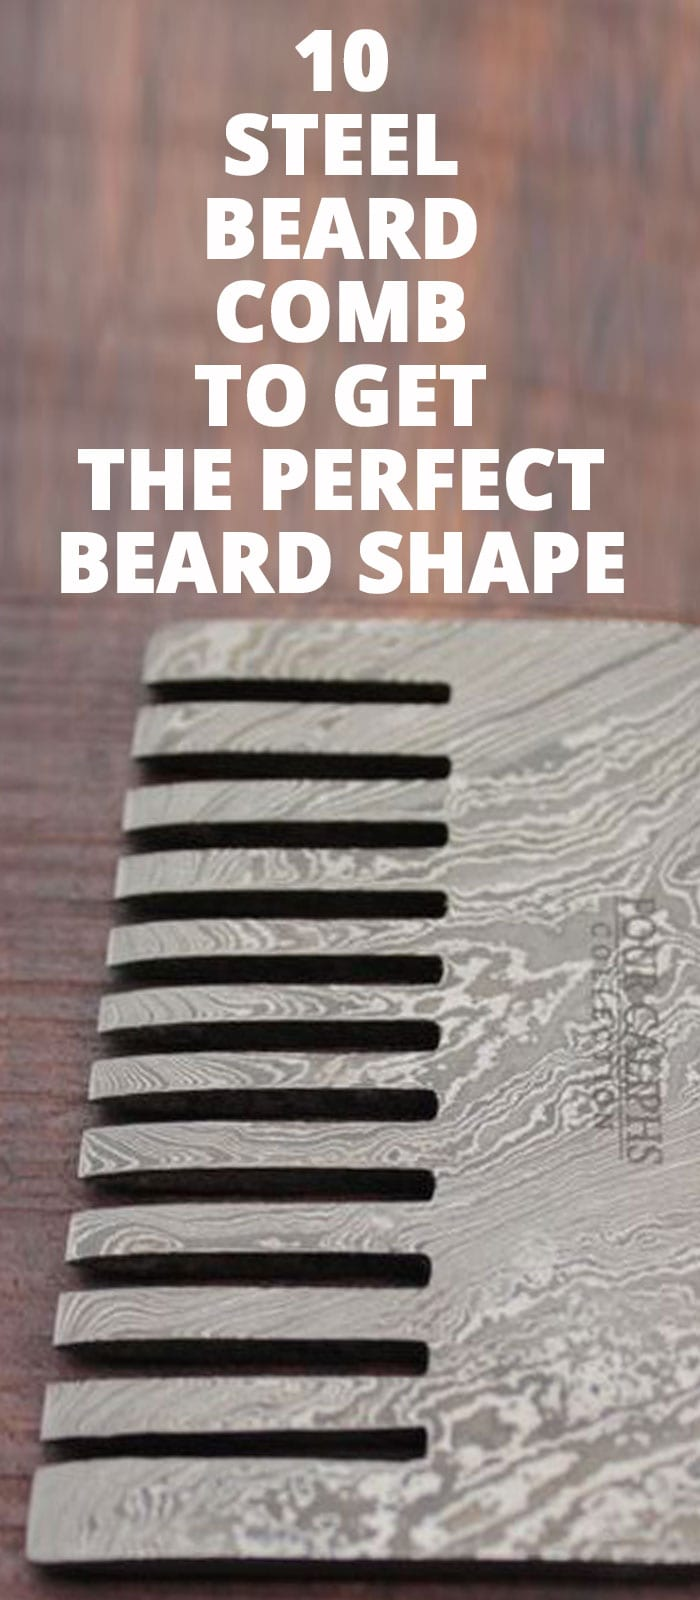 10 STEEL BEARD COMBS TO GET THE PERFECT BEARD SHAPE